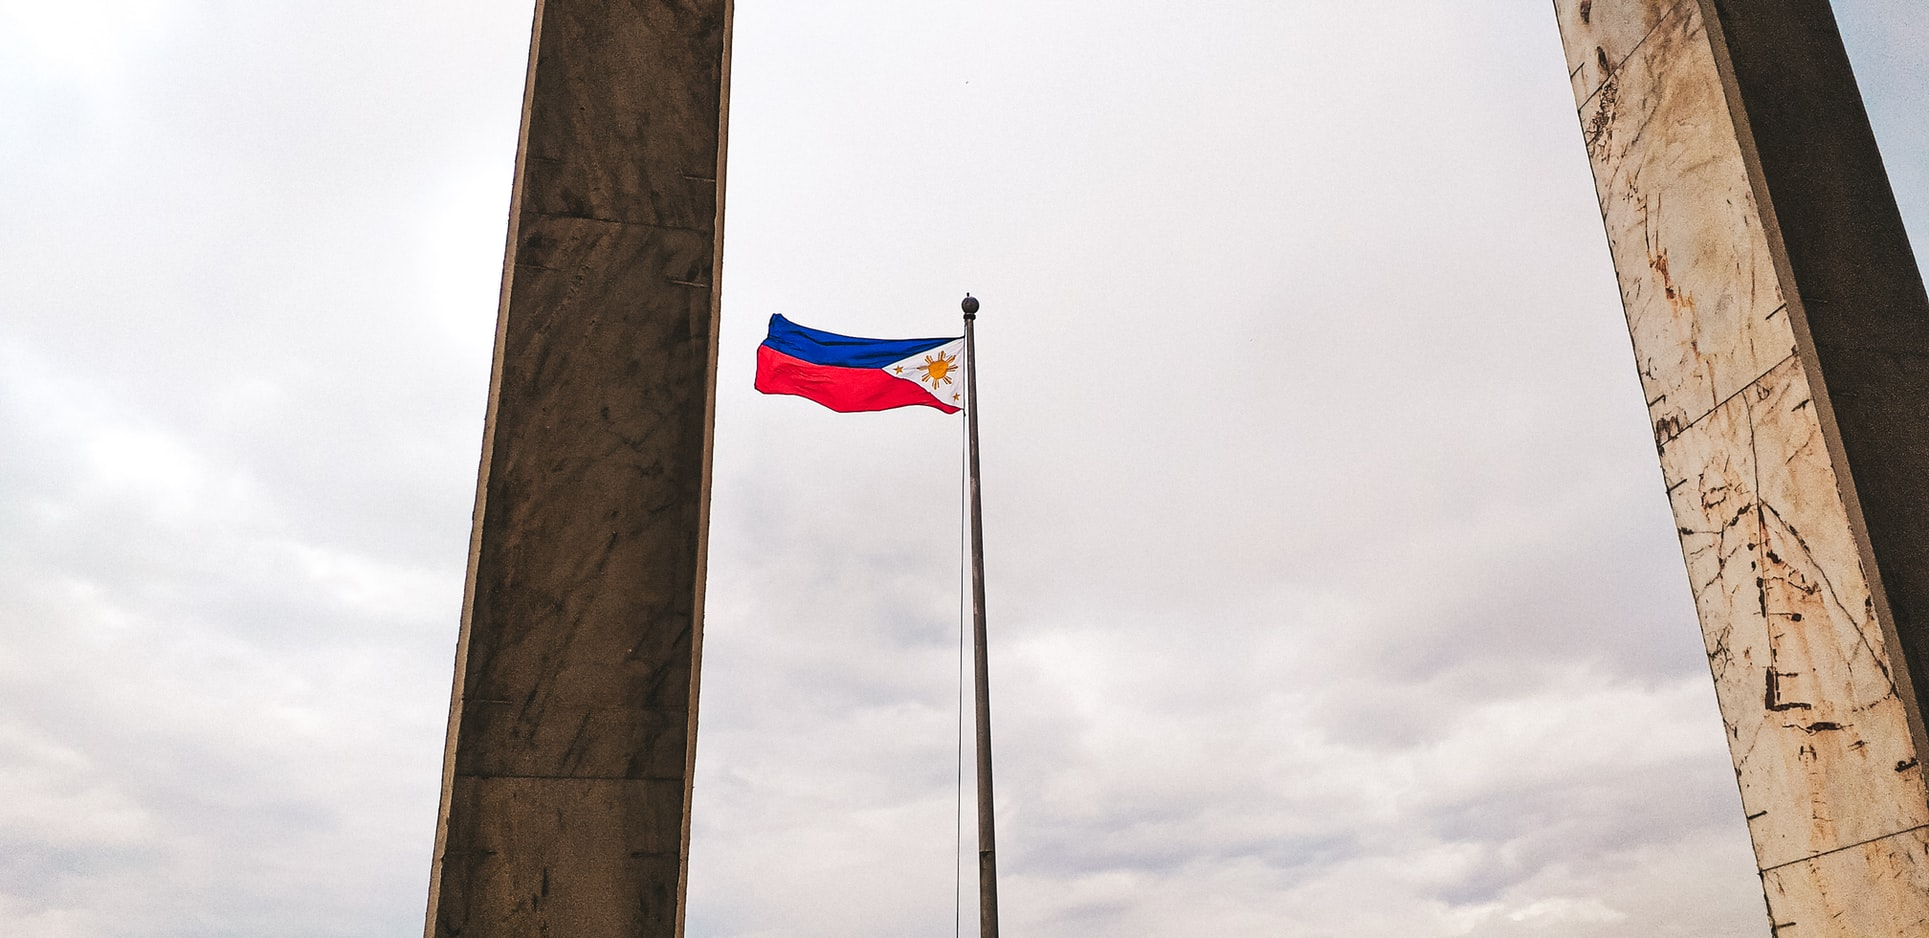 The Filipino flag is flown with the red stripe up in times of war and blue stripe up in times of peace.